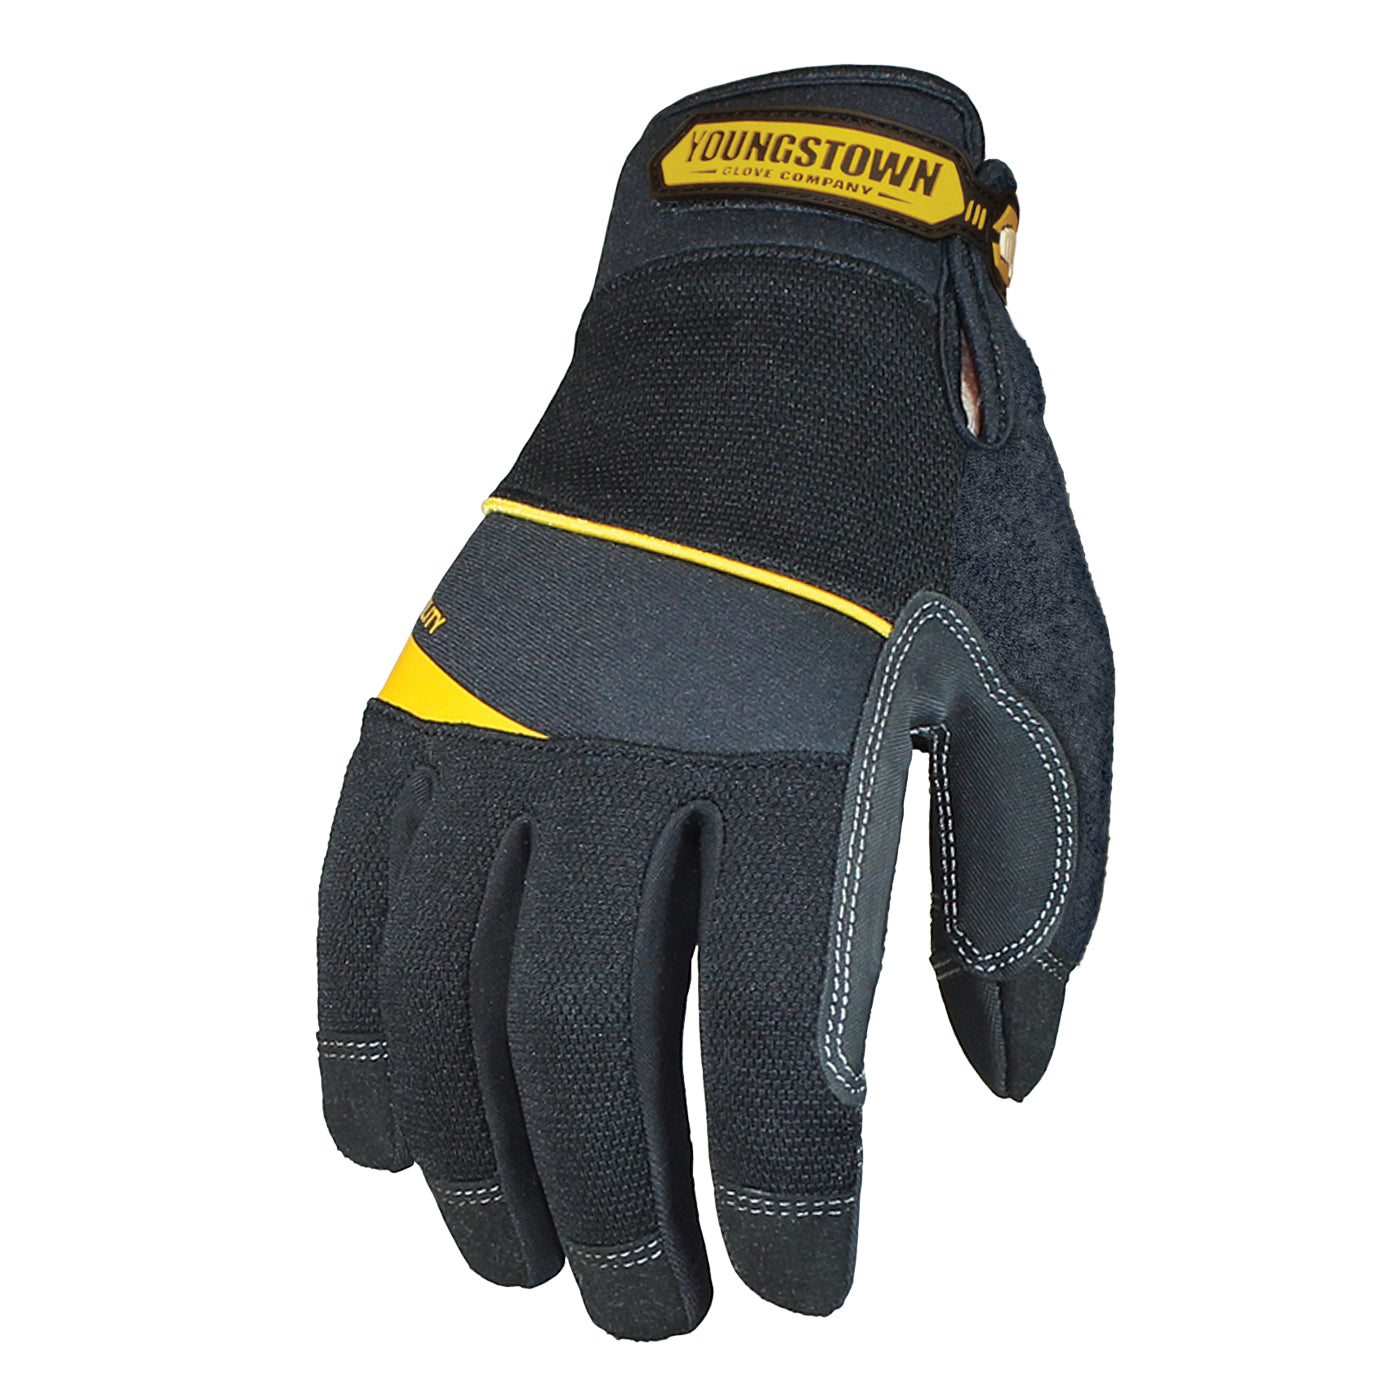 03-3060-80 Youngstown General Utility Plus Glove - Main image